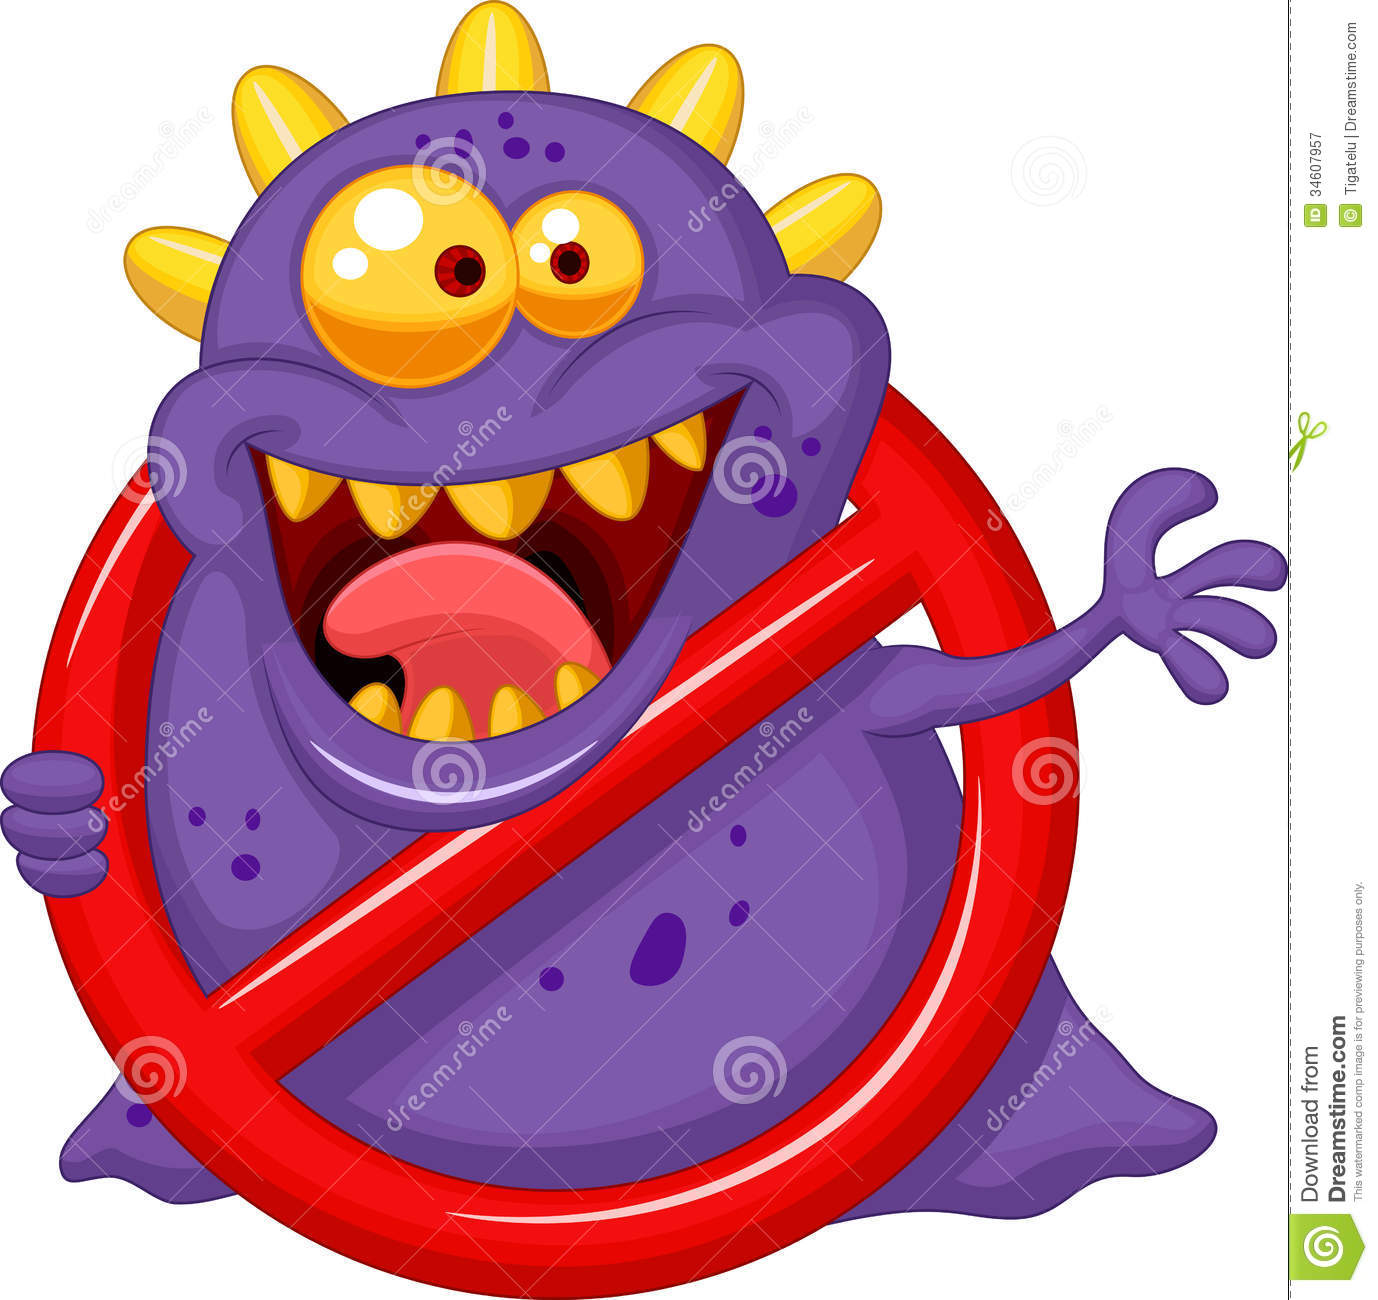 Germ Buster Clipart - Clipart Kid